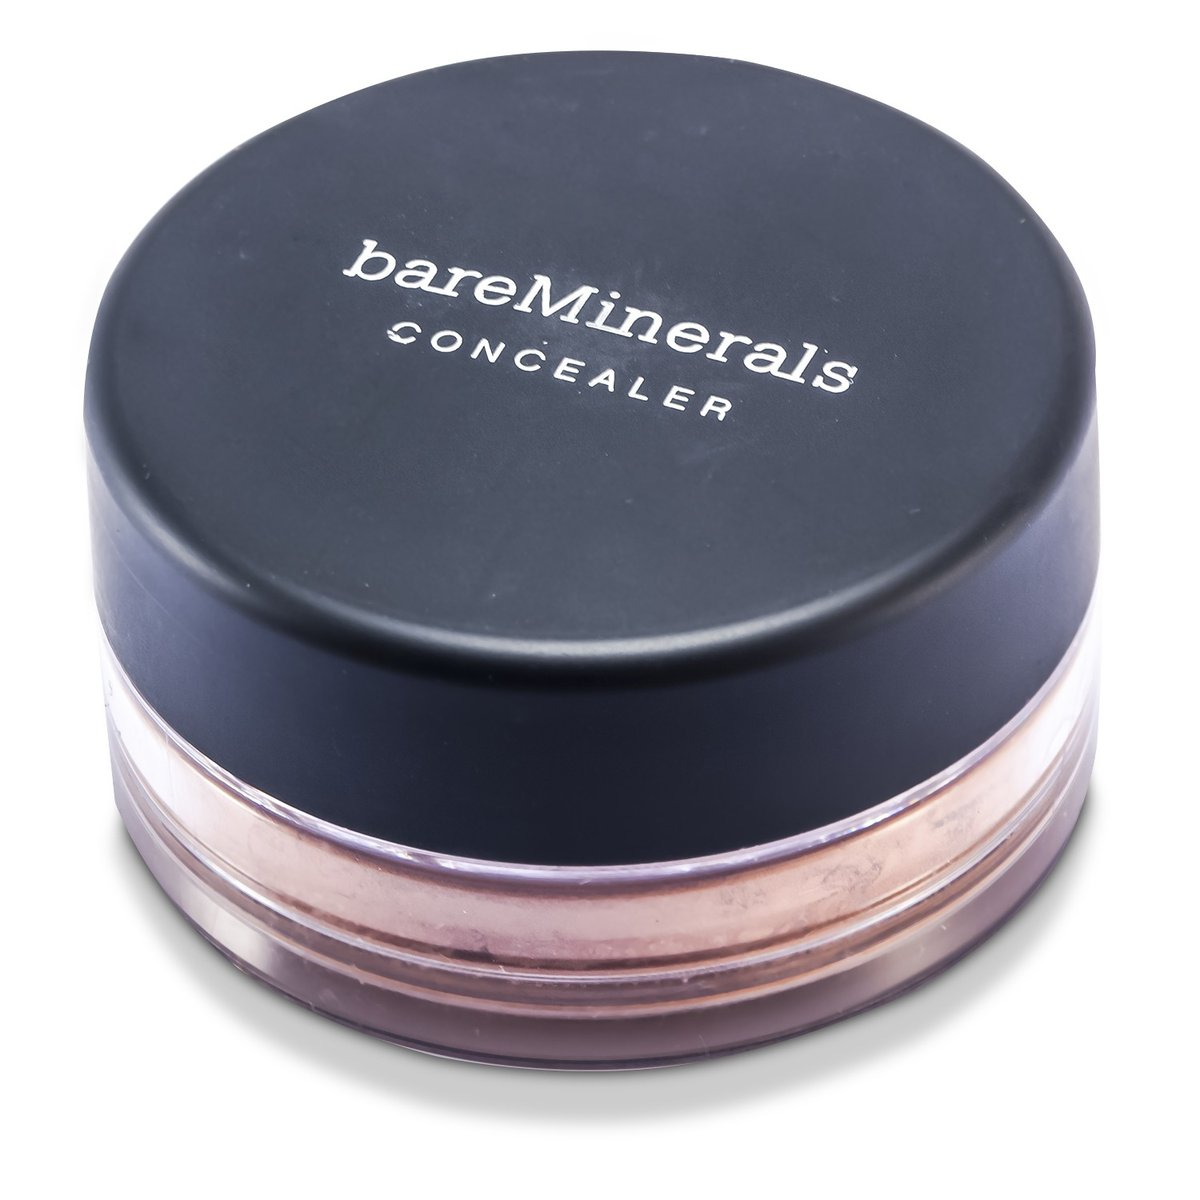 i.d. BareMinerals Multi Tasking Minerals SPF20 (Concealer or Eyeshadow Base) - Honey Bisque  -[Parallel Import Product]